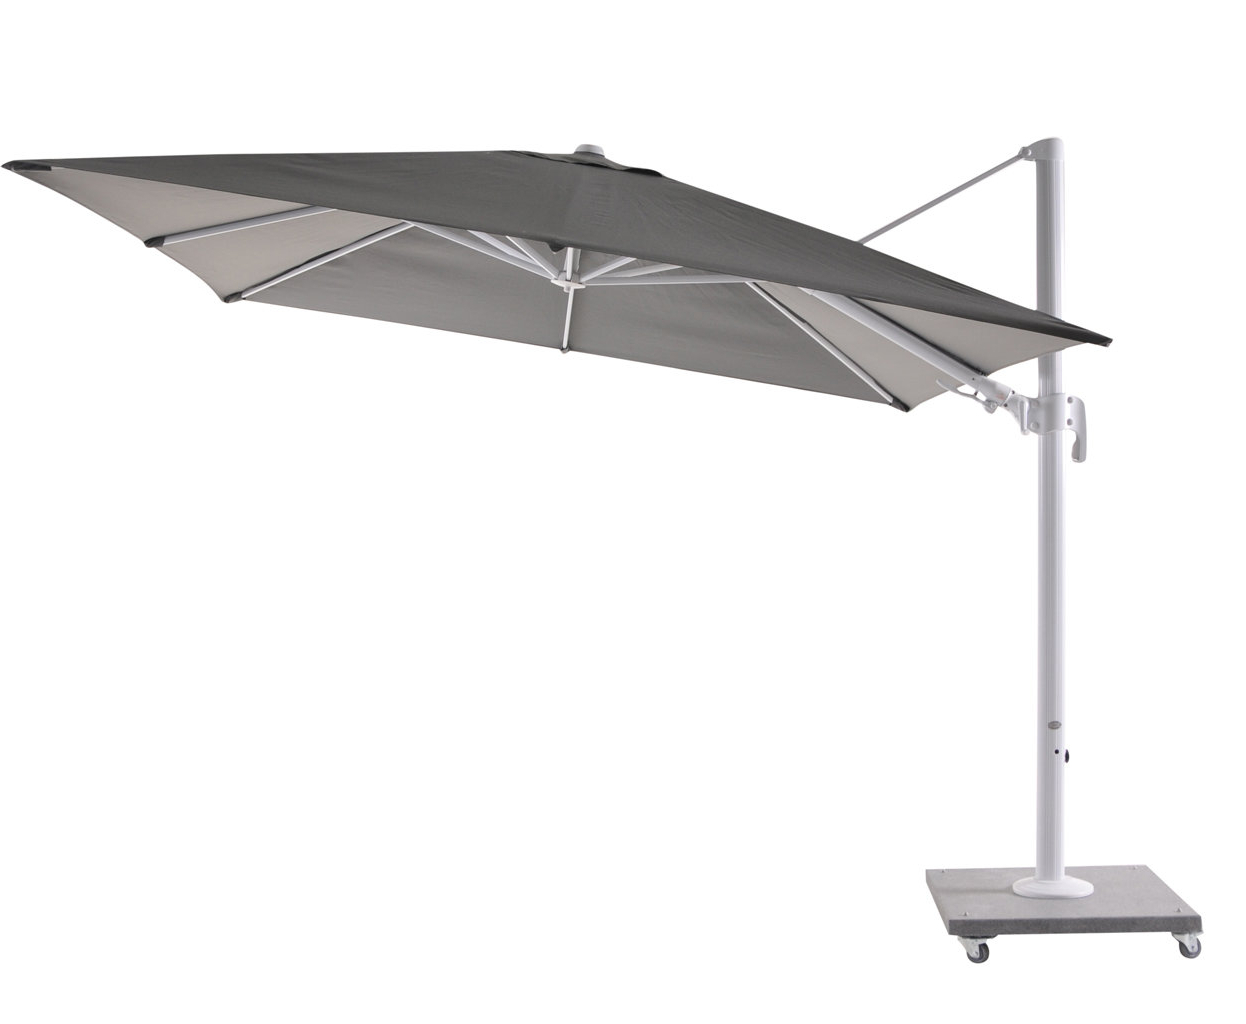 Grote Liberty Aluminum Square Cantilever Umbrellas Throughout Most Current Bozarth 10' Square Cantilever Umbrella (View 17 of 20)